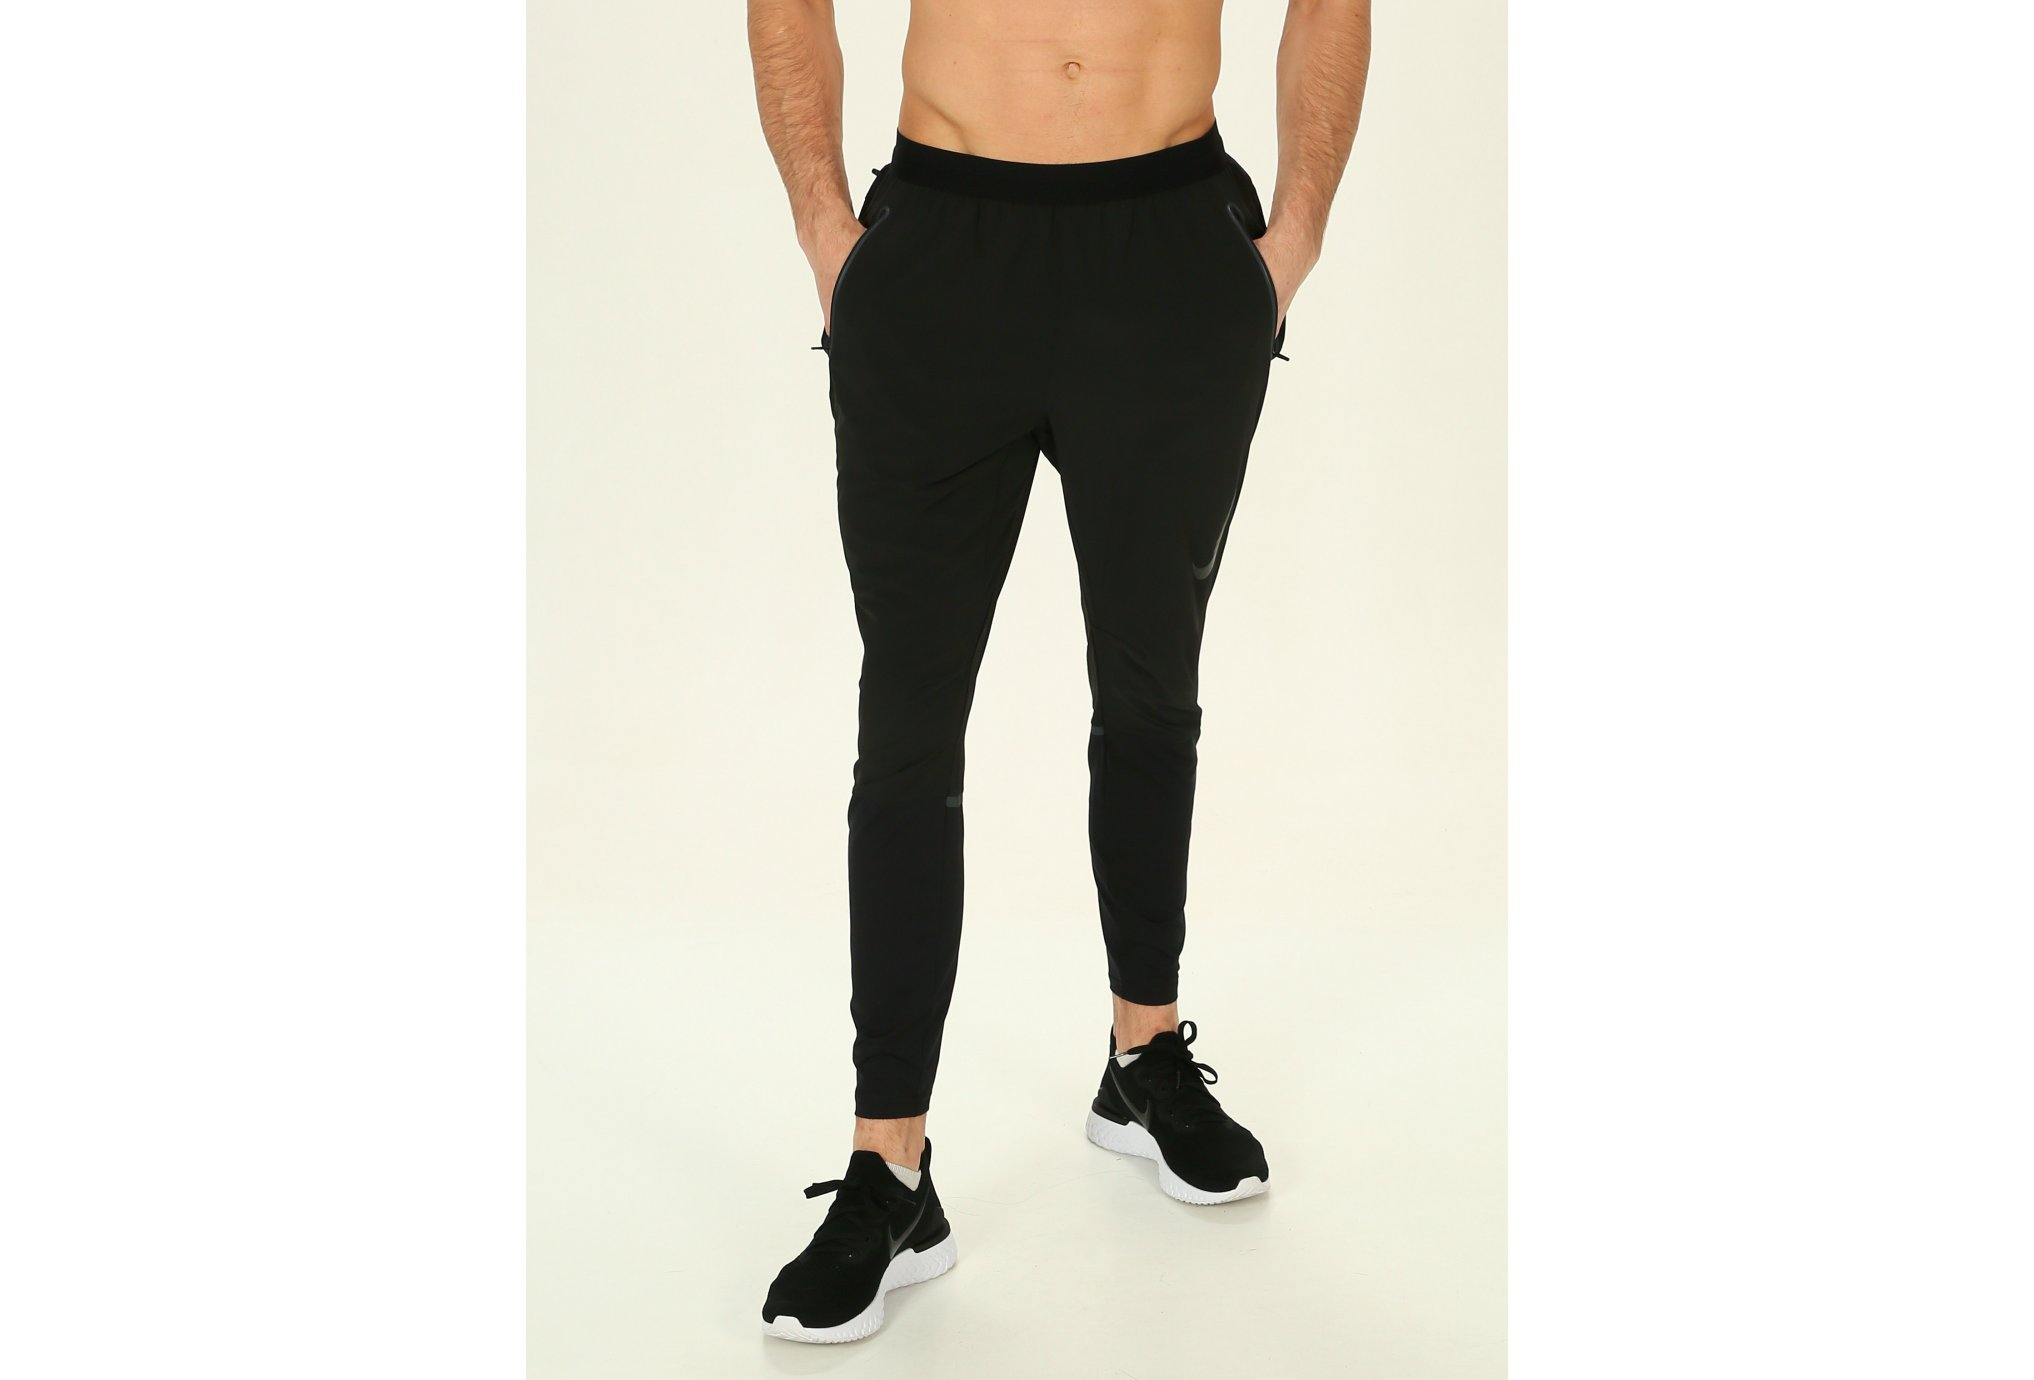 pas mal 365ea 5253f Collant Nike Run